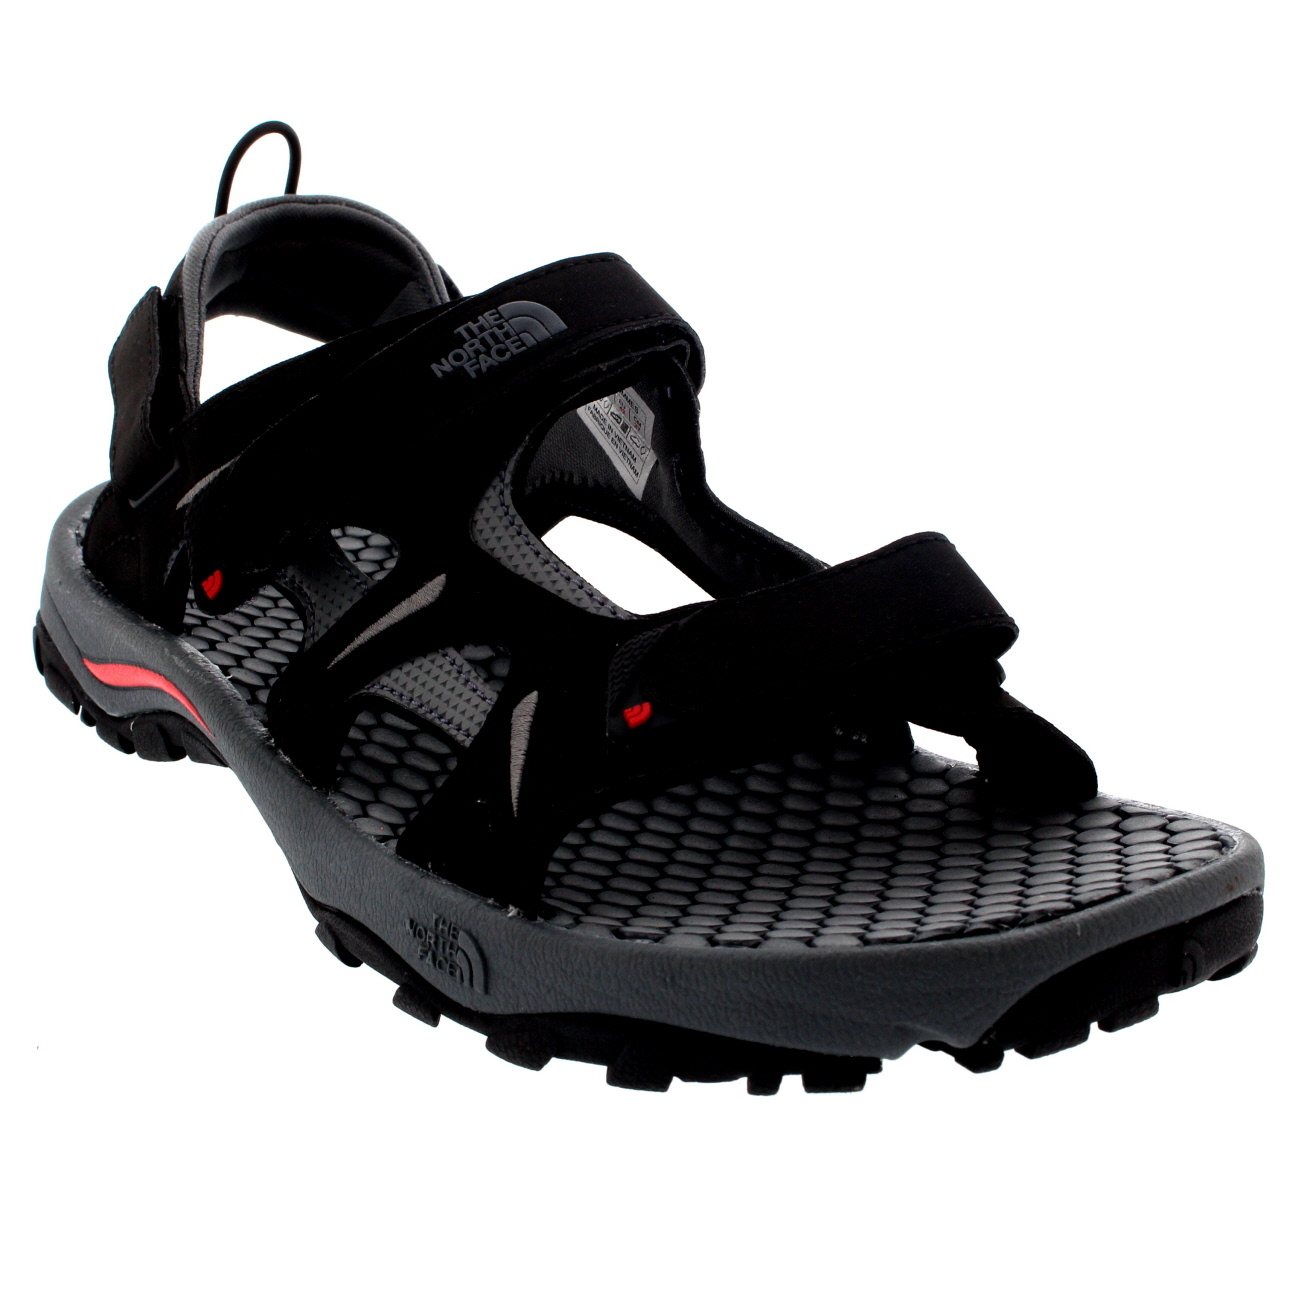 Best North Face Hiking Shoe